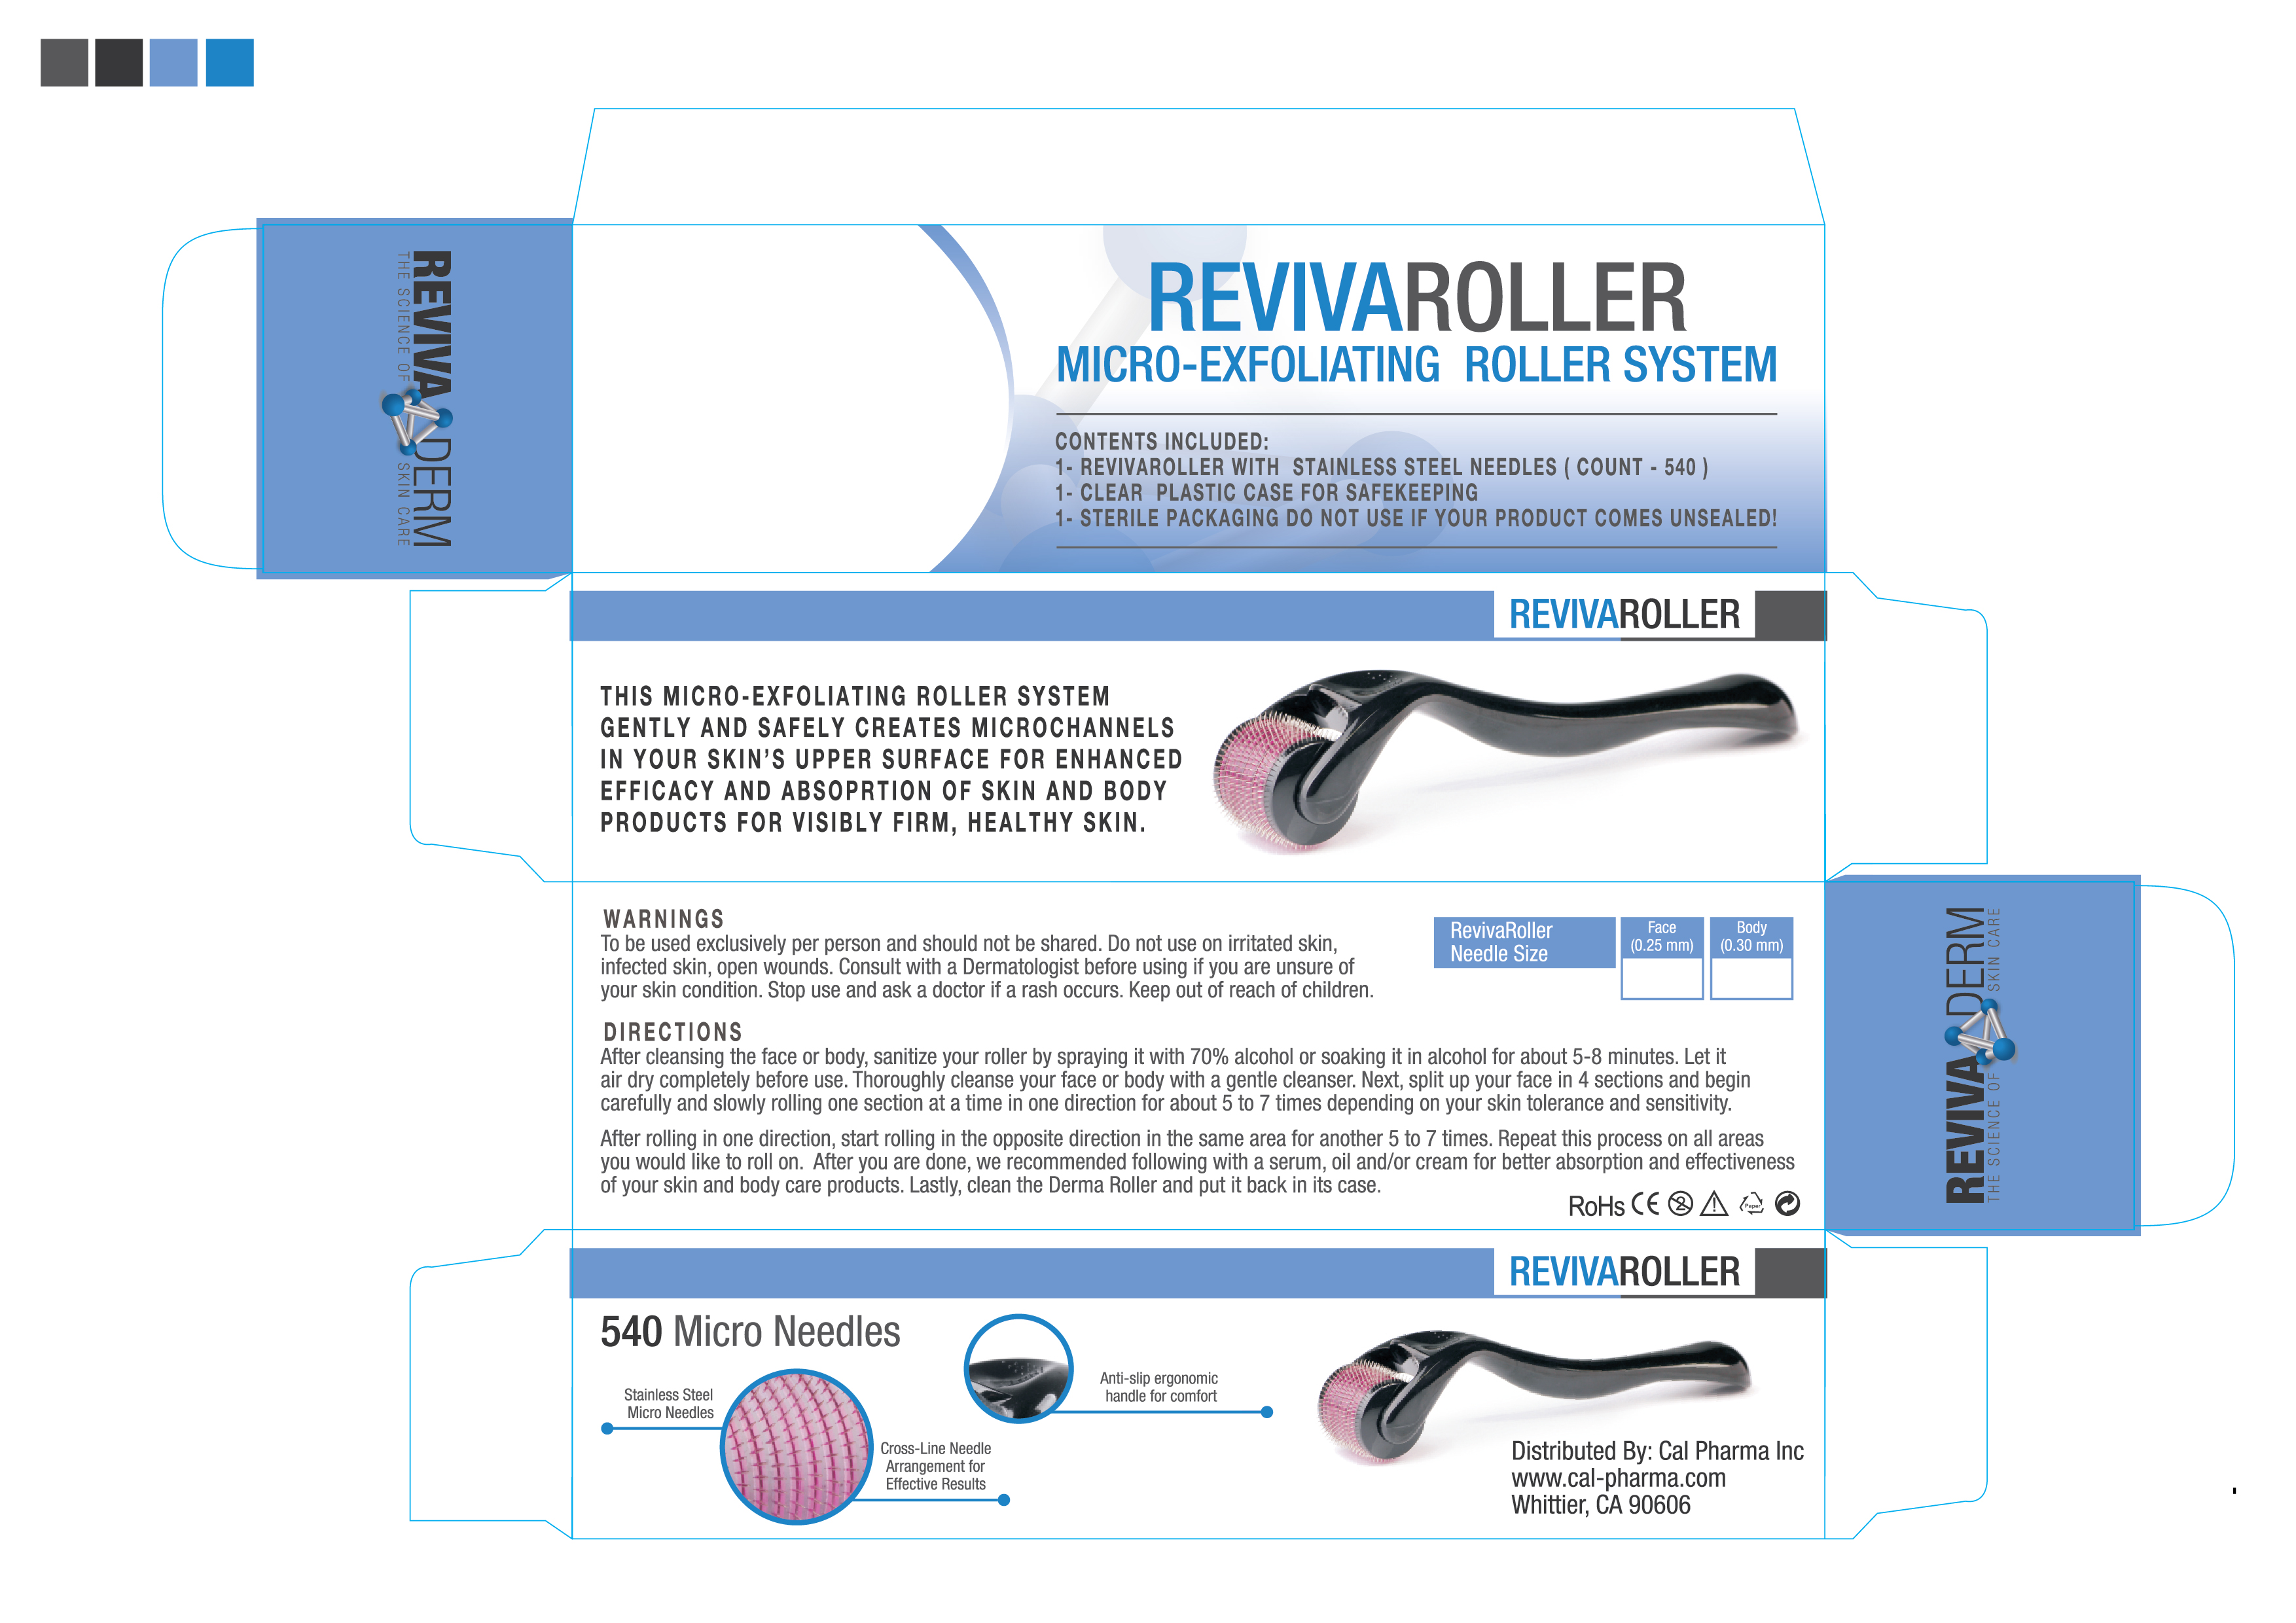 RevivaRoller Micro-Exfoliating Roller System - 540 0 25mm Stainless Steel  needles in Sterile Packaging